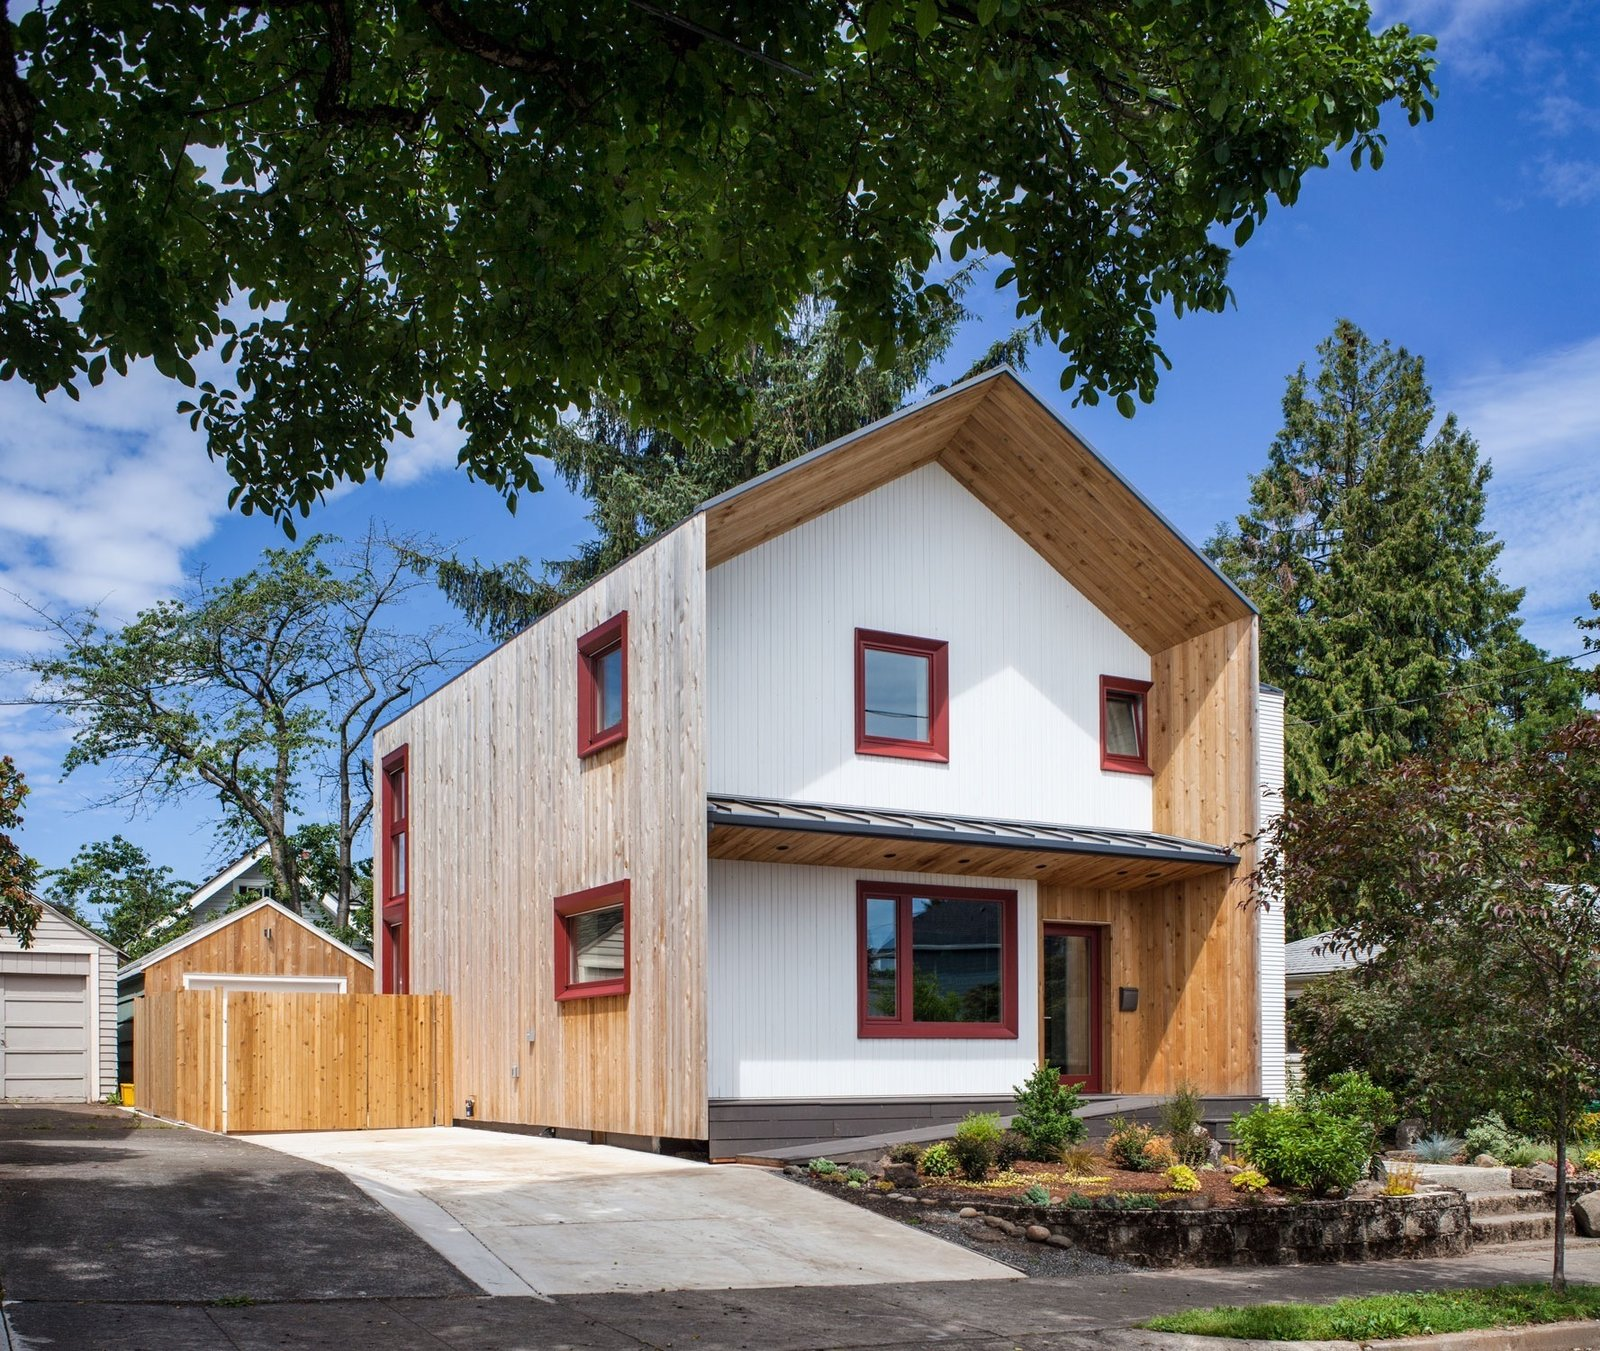 Articles about green portland home built passive